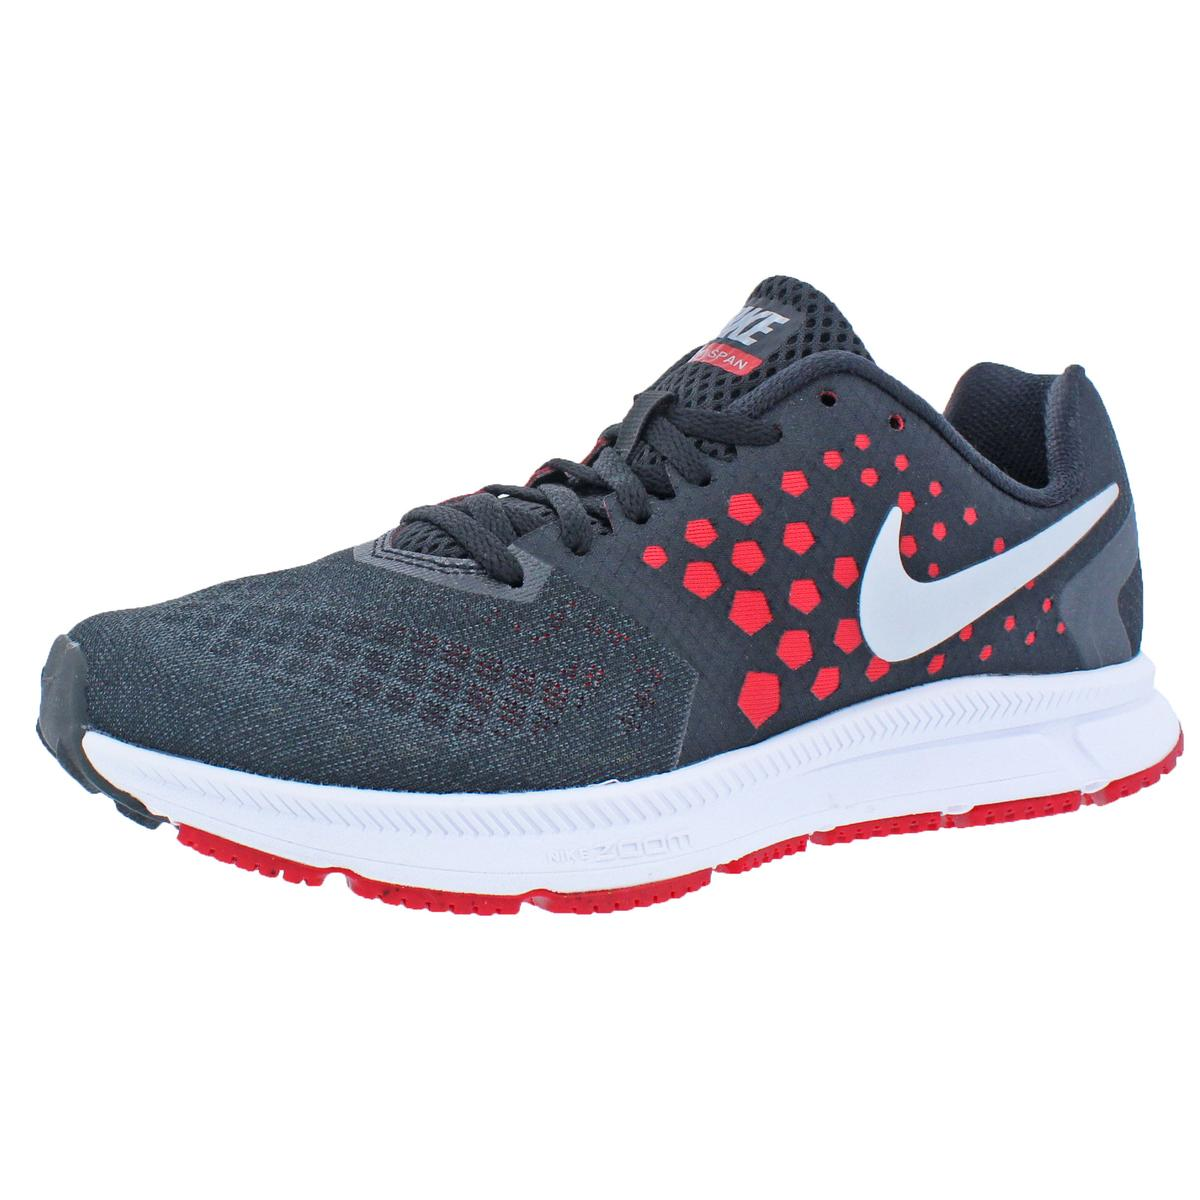 Nike Support Zoom Span Lightweight athlétique Dynamic Support Nike fonctionnement chaussures BHFO 0689 d82cbc